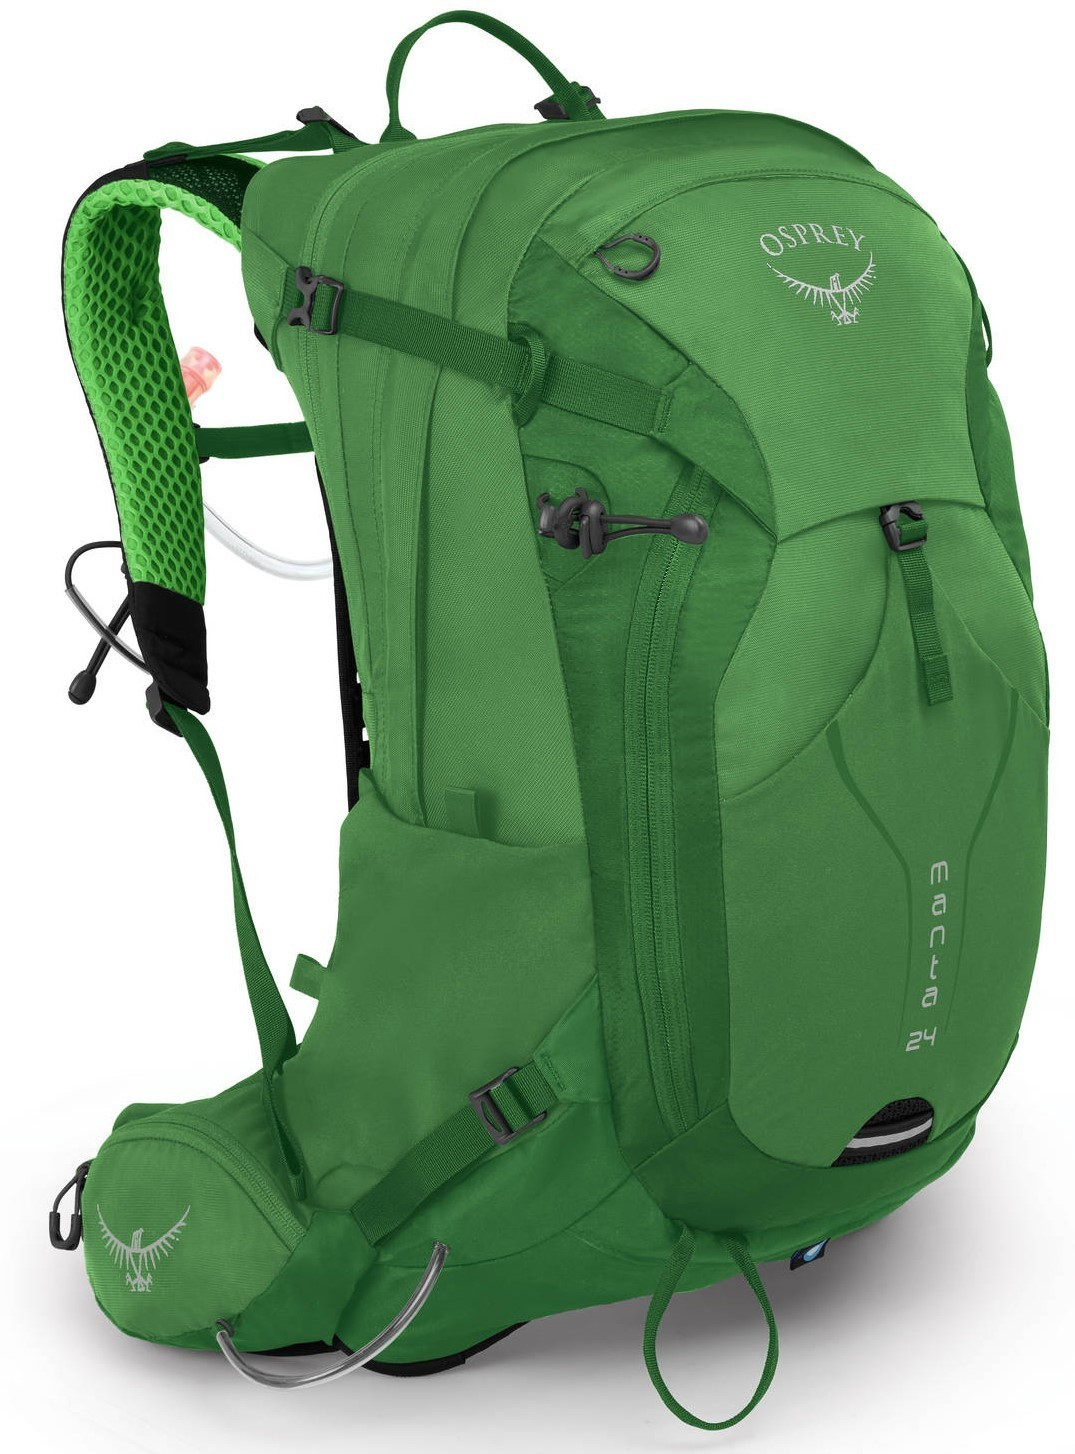 Manta Рюкзак туристический Osprey Manta 24 Green Shade Manta_24_S19_Side_Green_Shade_web.jpg